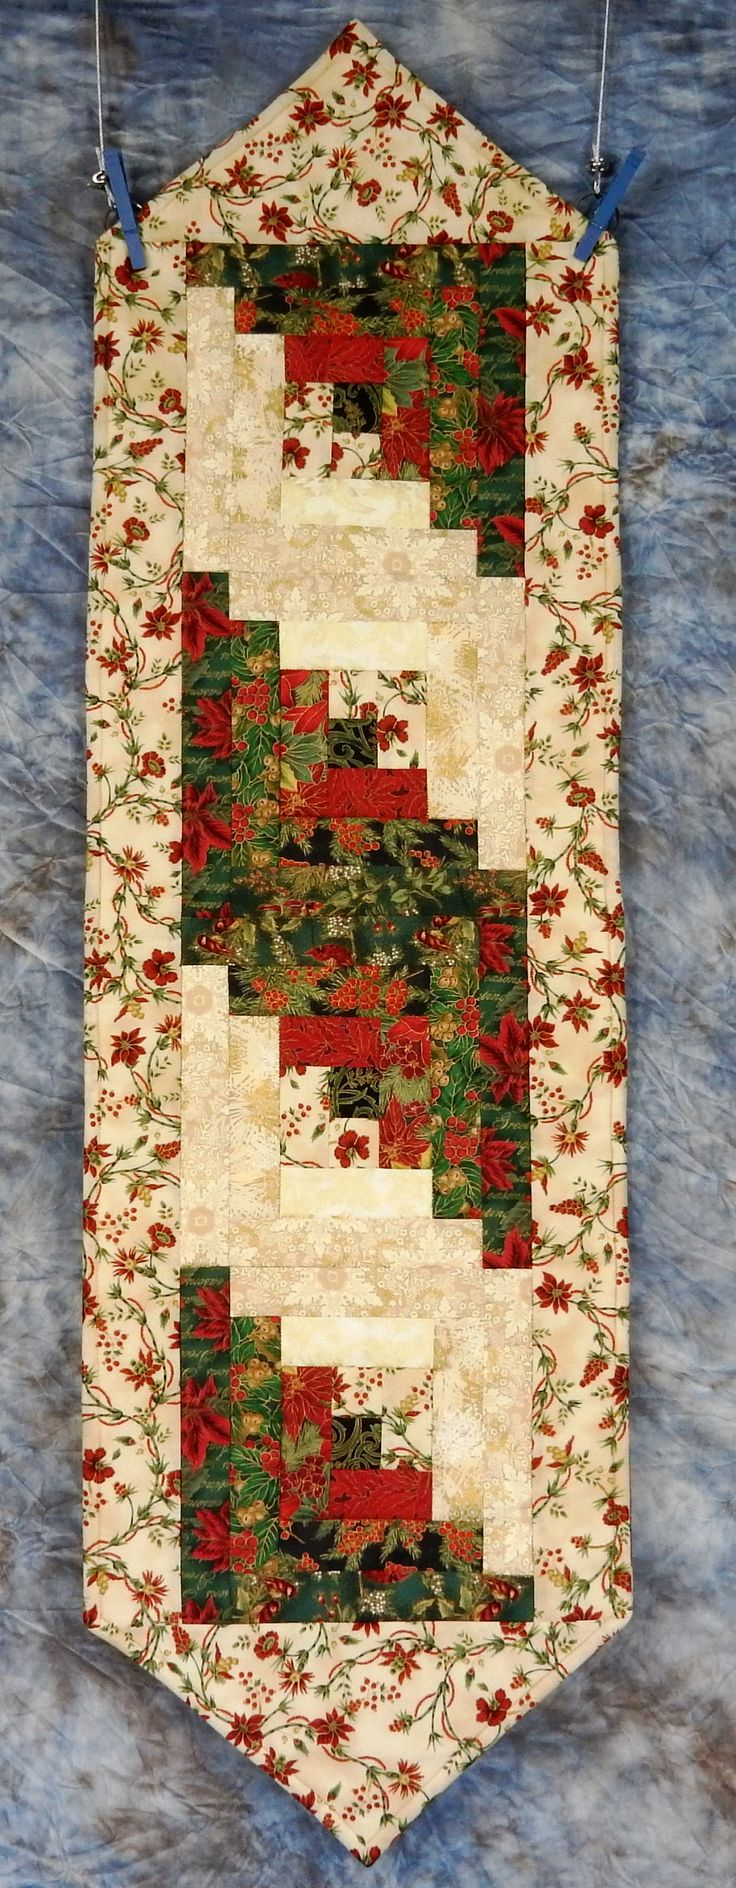 This beautiful, quilted table runner contains four log cabin quilt blocks composed from gorgeous Holiday fabrics. Backing for the runner is Seasons Greetins making the runner reversible and appropriate for use throughout the winter and holiday season. It is machine pieced and machine quilted. The table runner measures 14.5 x 50 with tapered ends. This runner is washable and instructions will be sent with your purchase. Fabric supplies from Jordan Fabrics of Oregon.